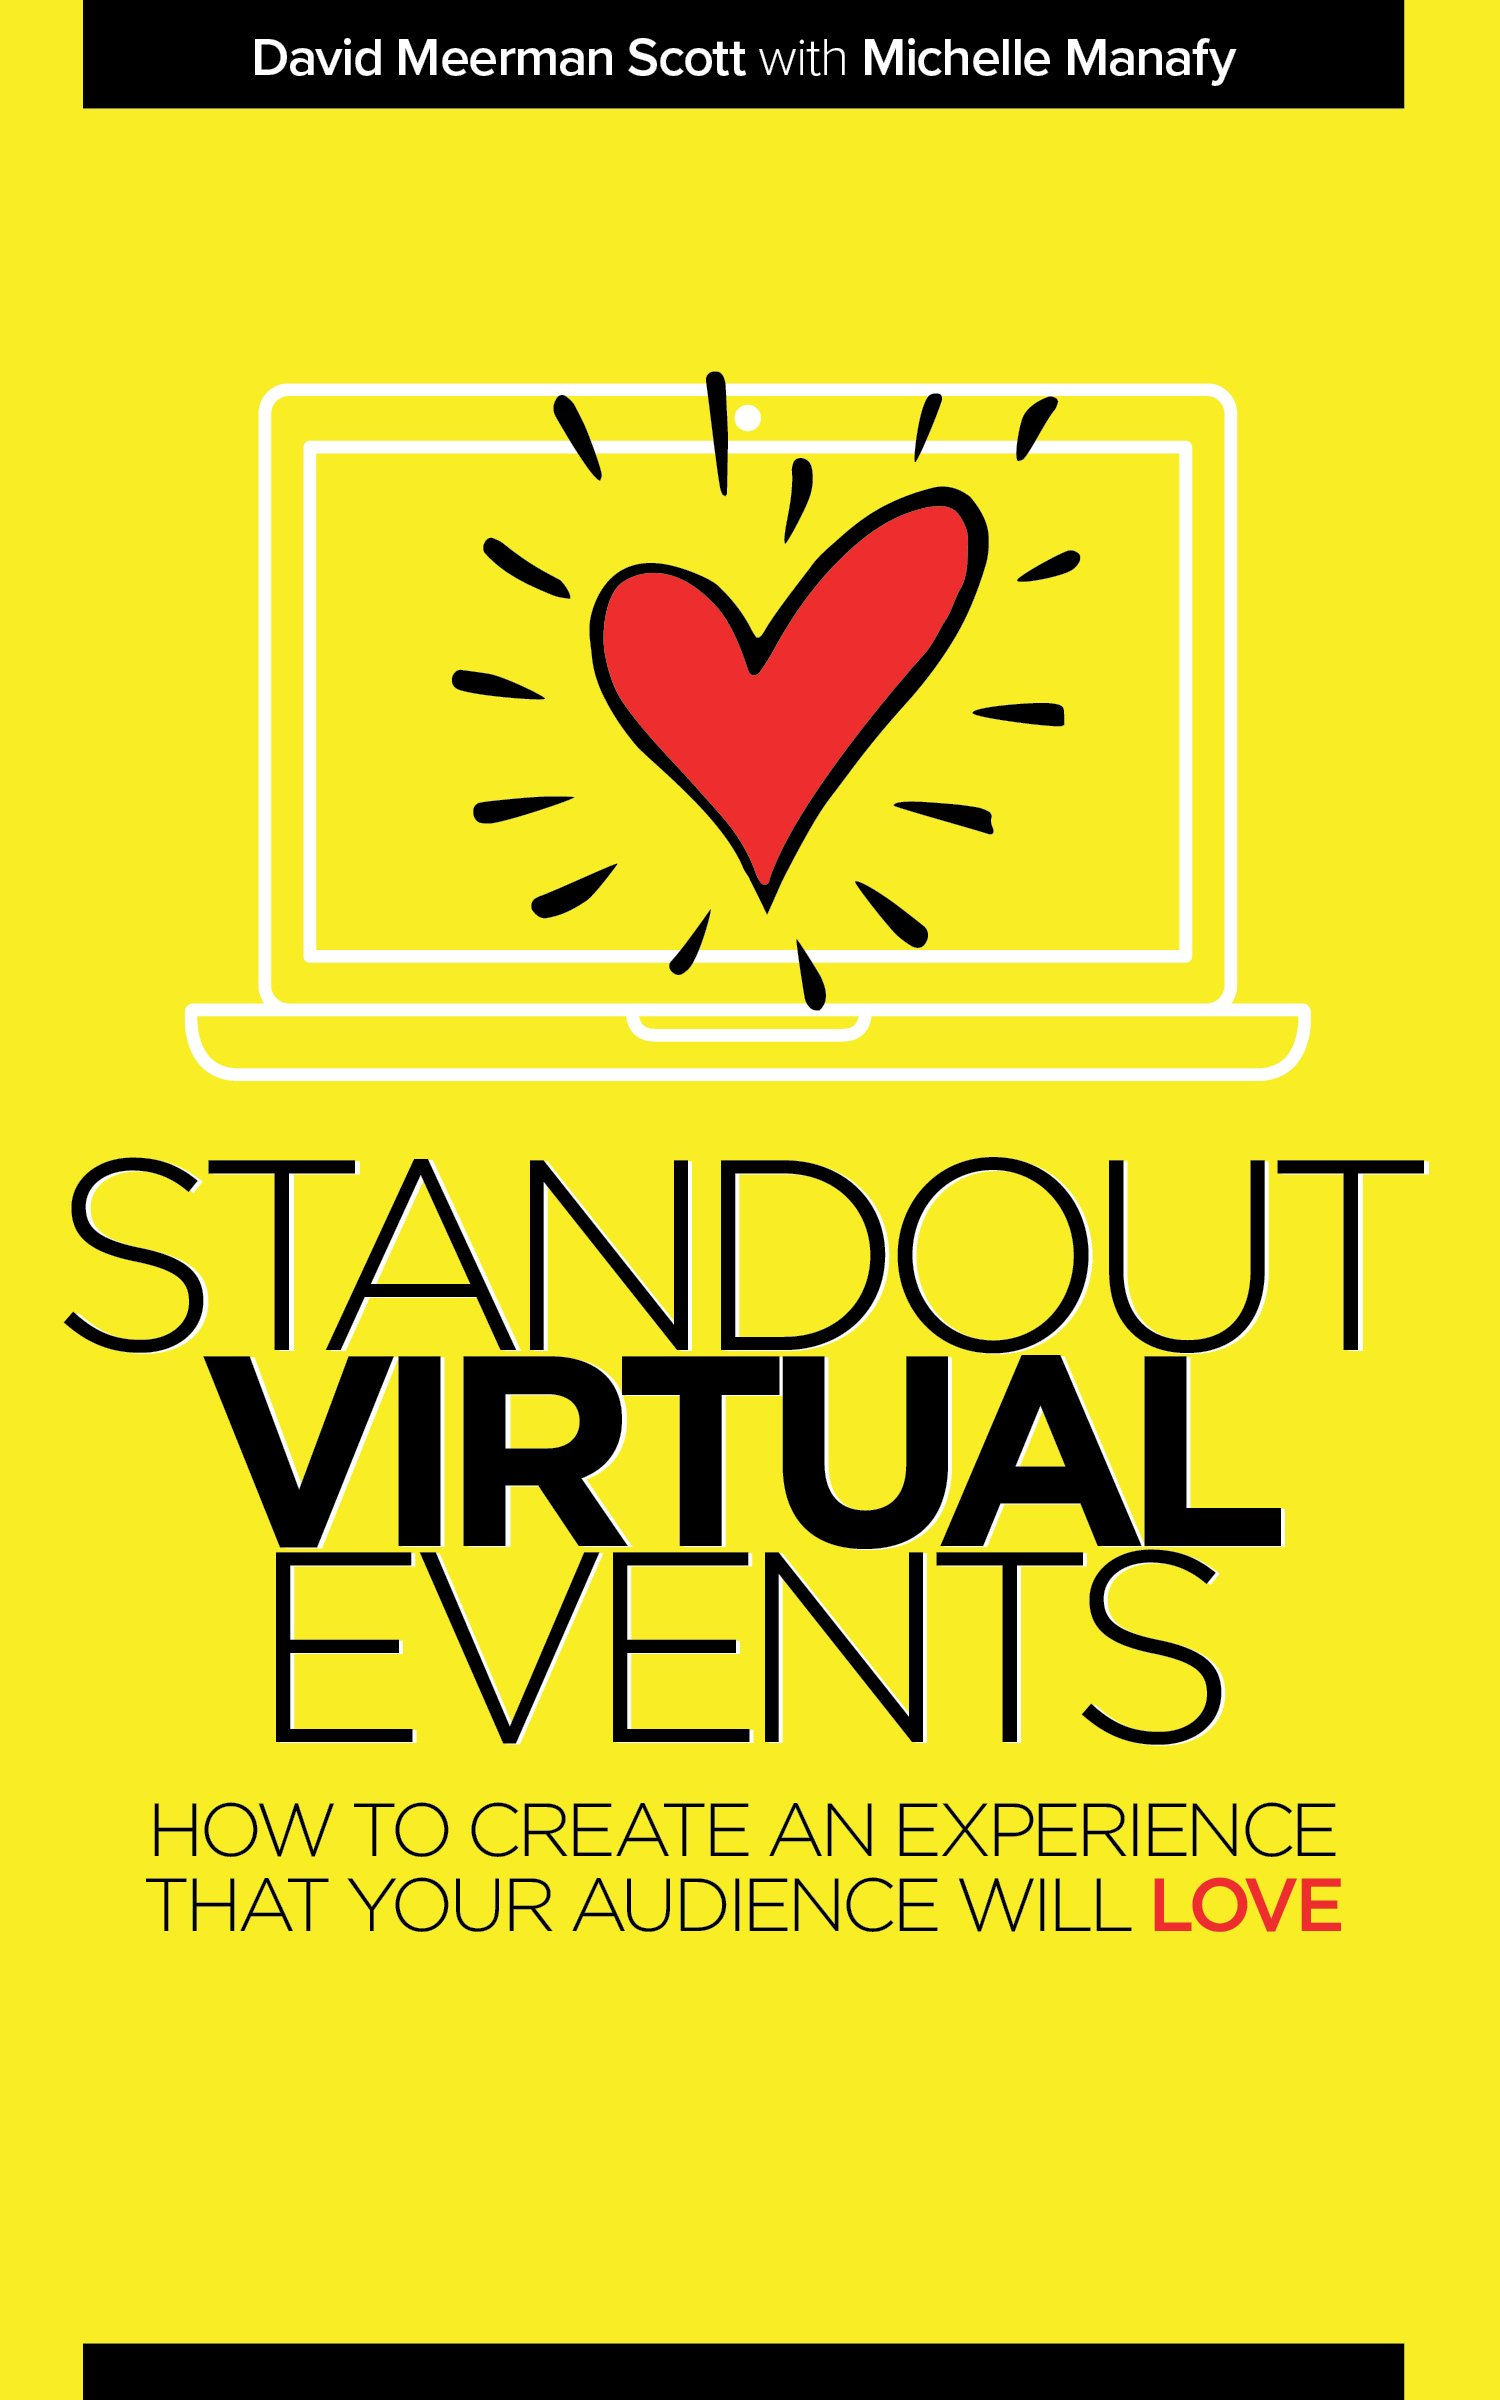 Announcing My New Book Available Now: Standout Virtual Events